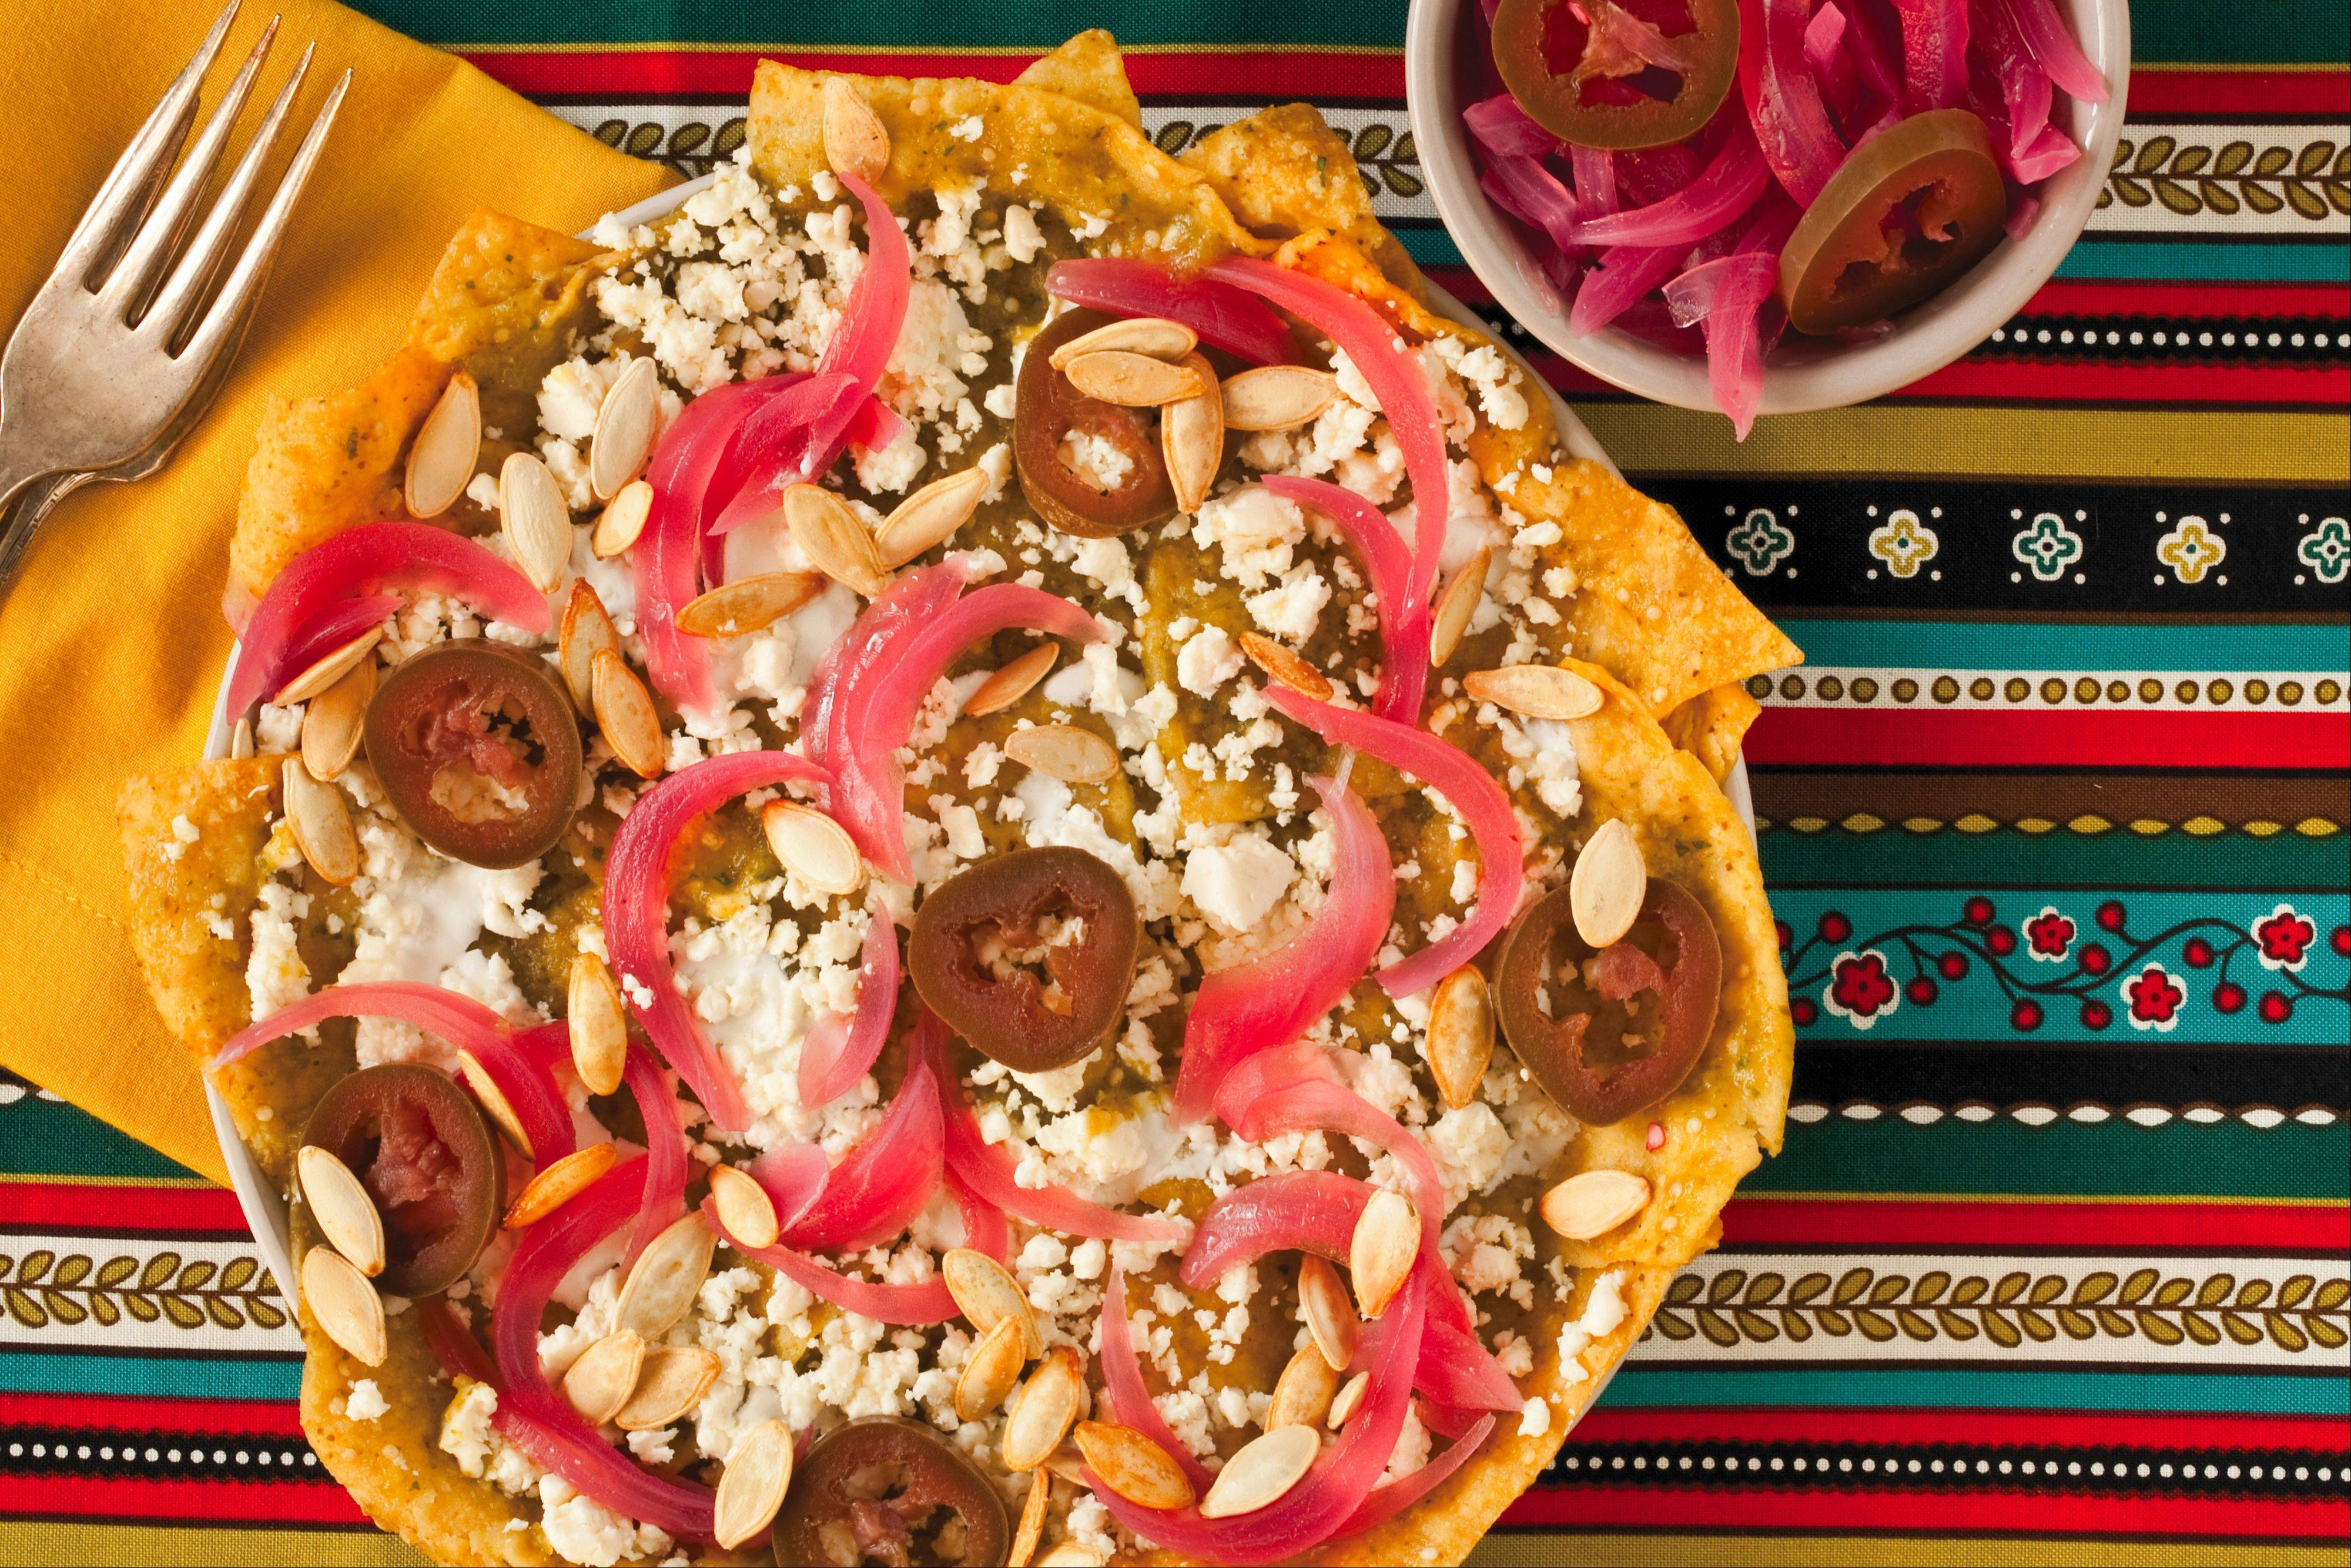 Pickled red onion and jalpeno add piquant flavors to chilaquilas.